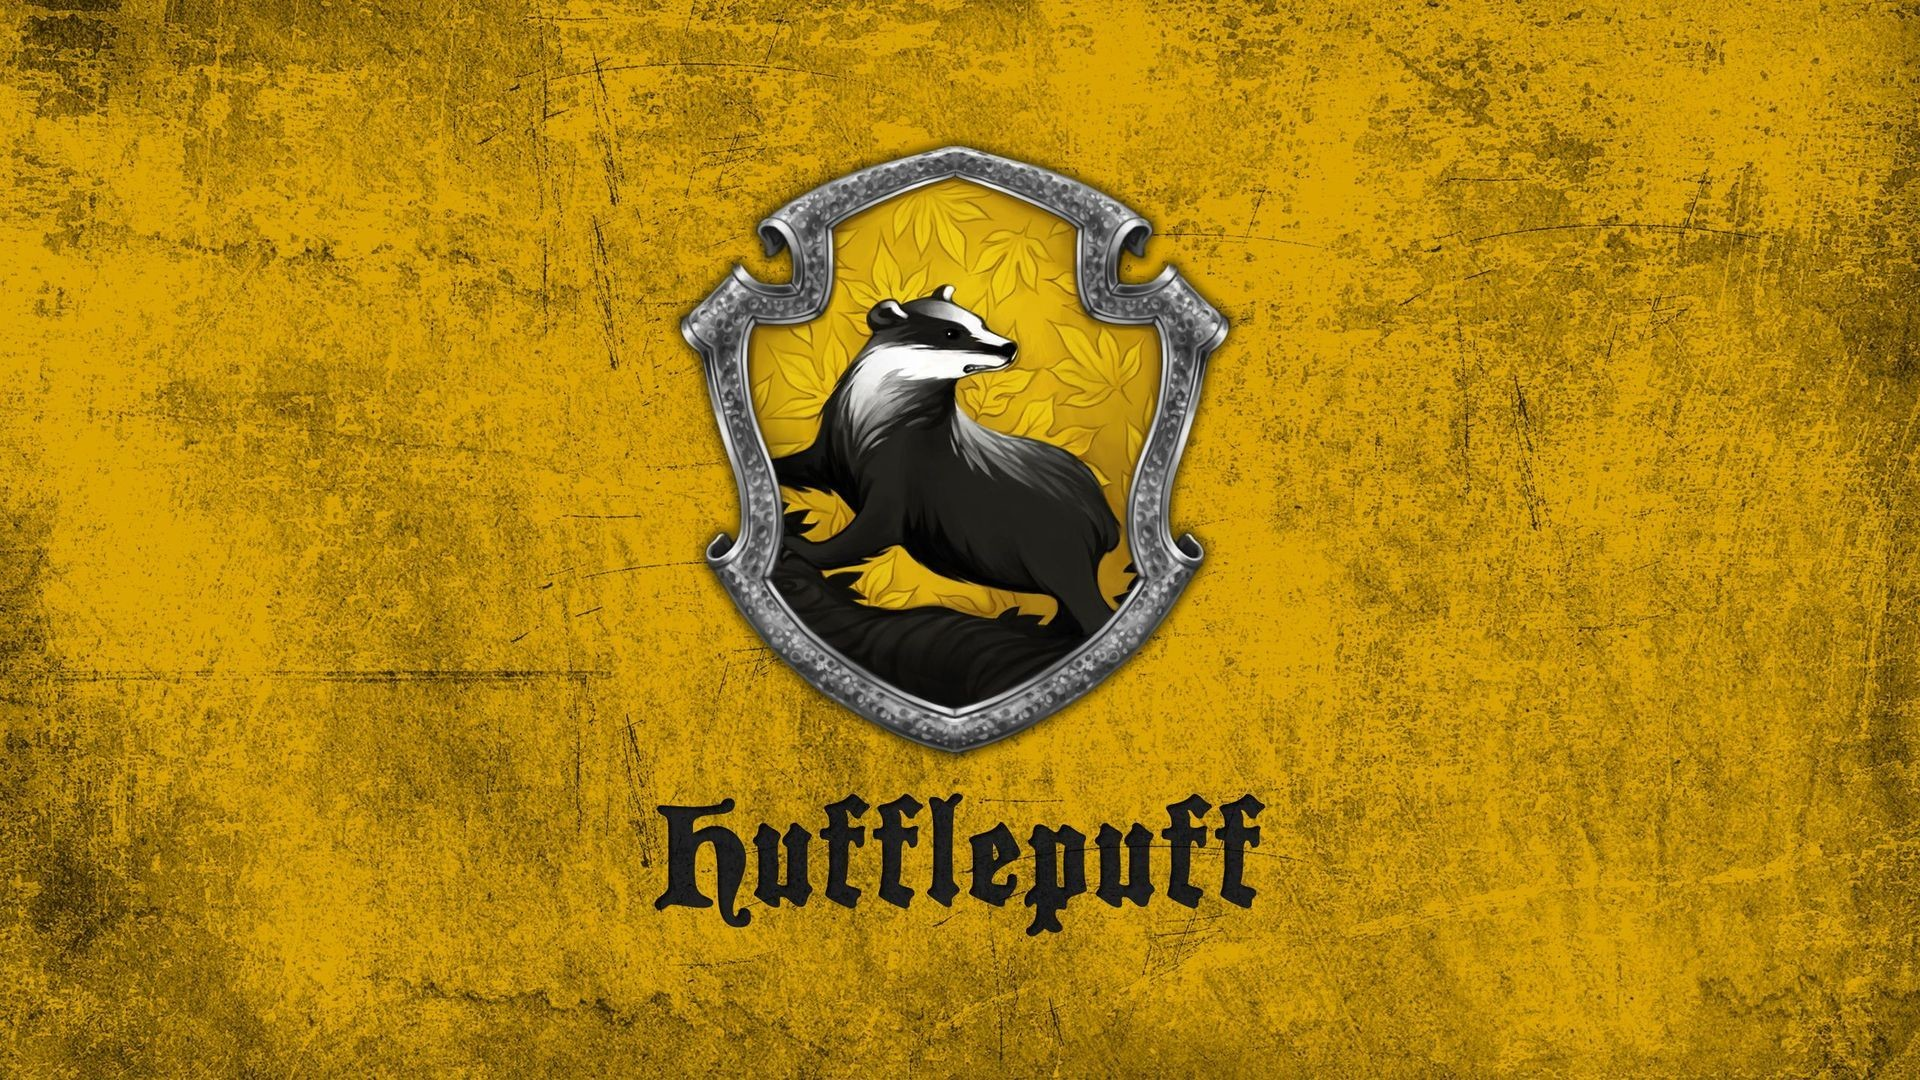 1920x1080 Image result for hufflepuff